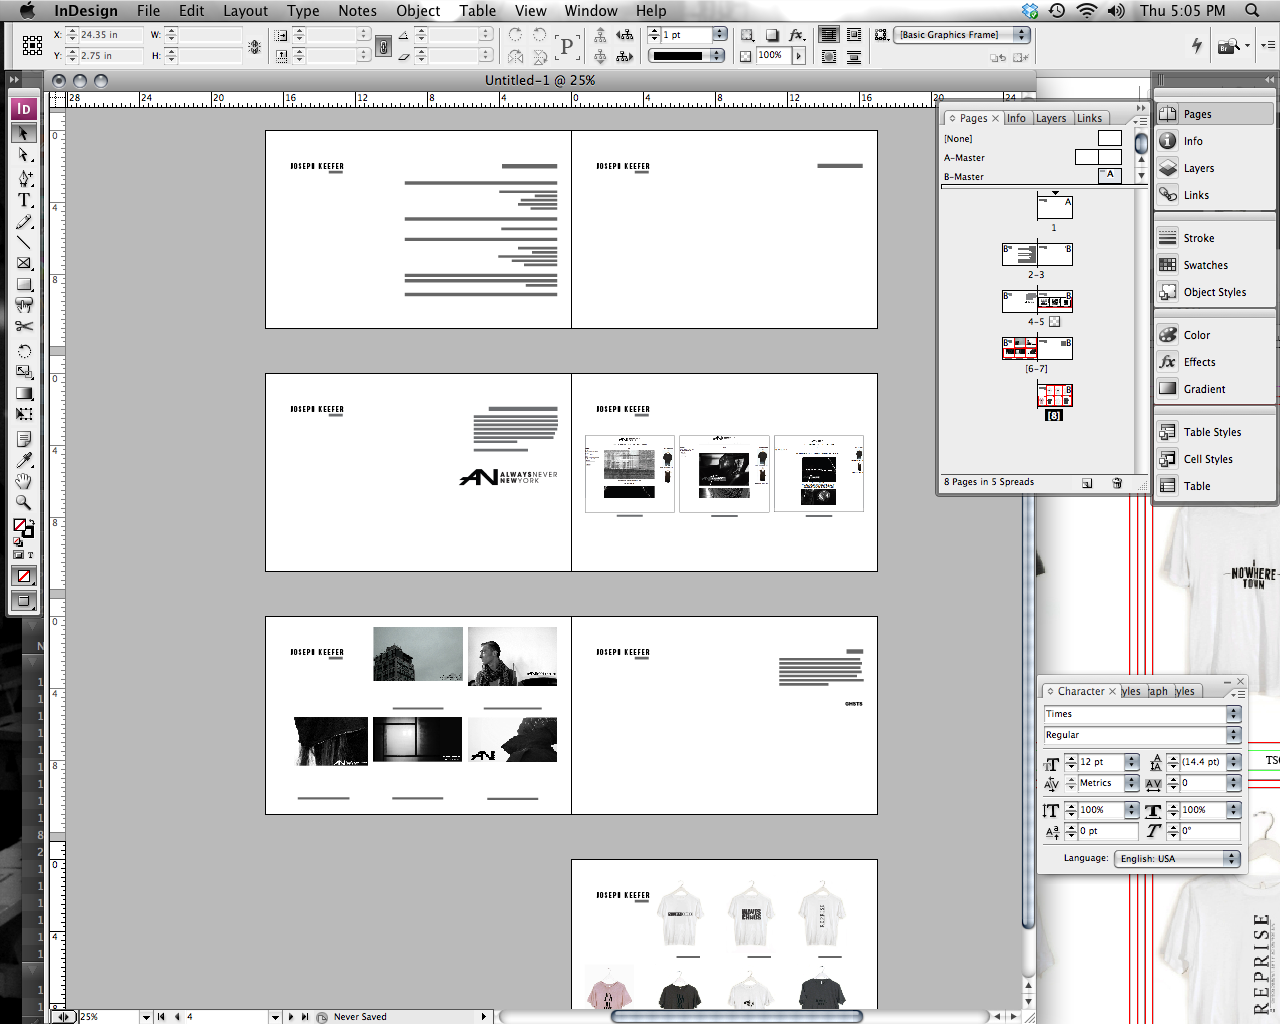 Re-working the portfolio. Sometimes you have to love Indesign